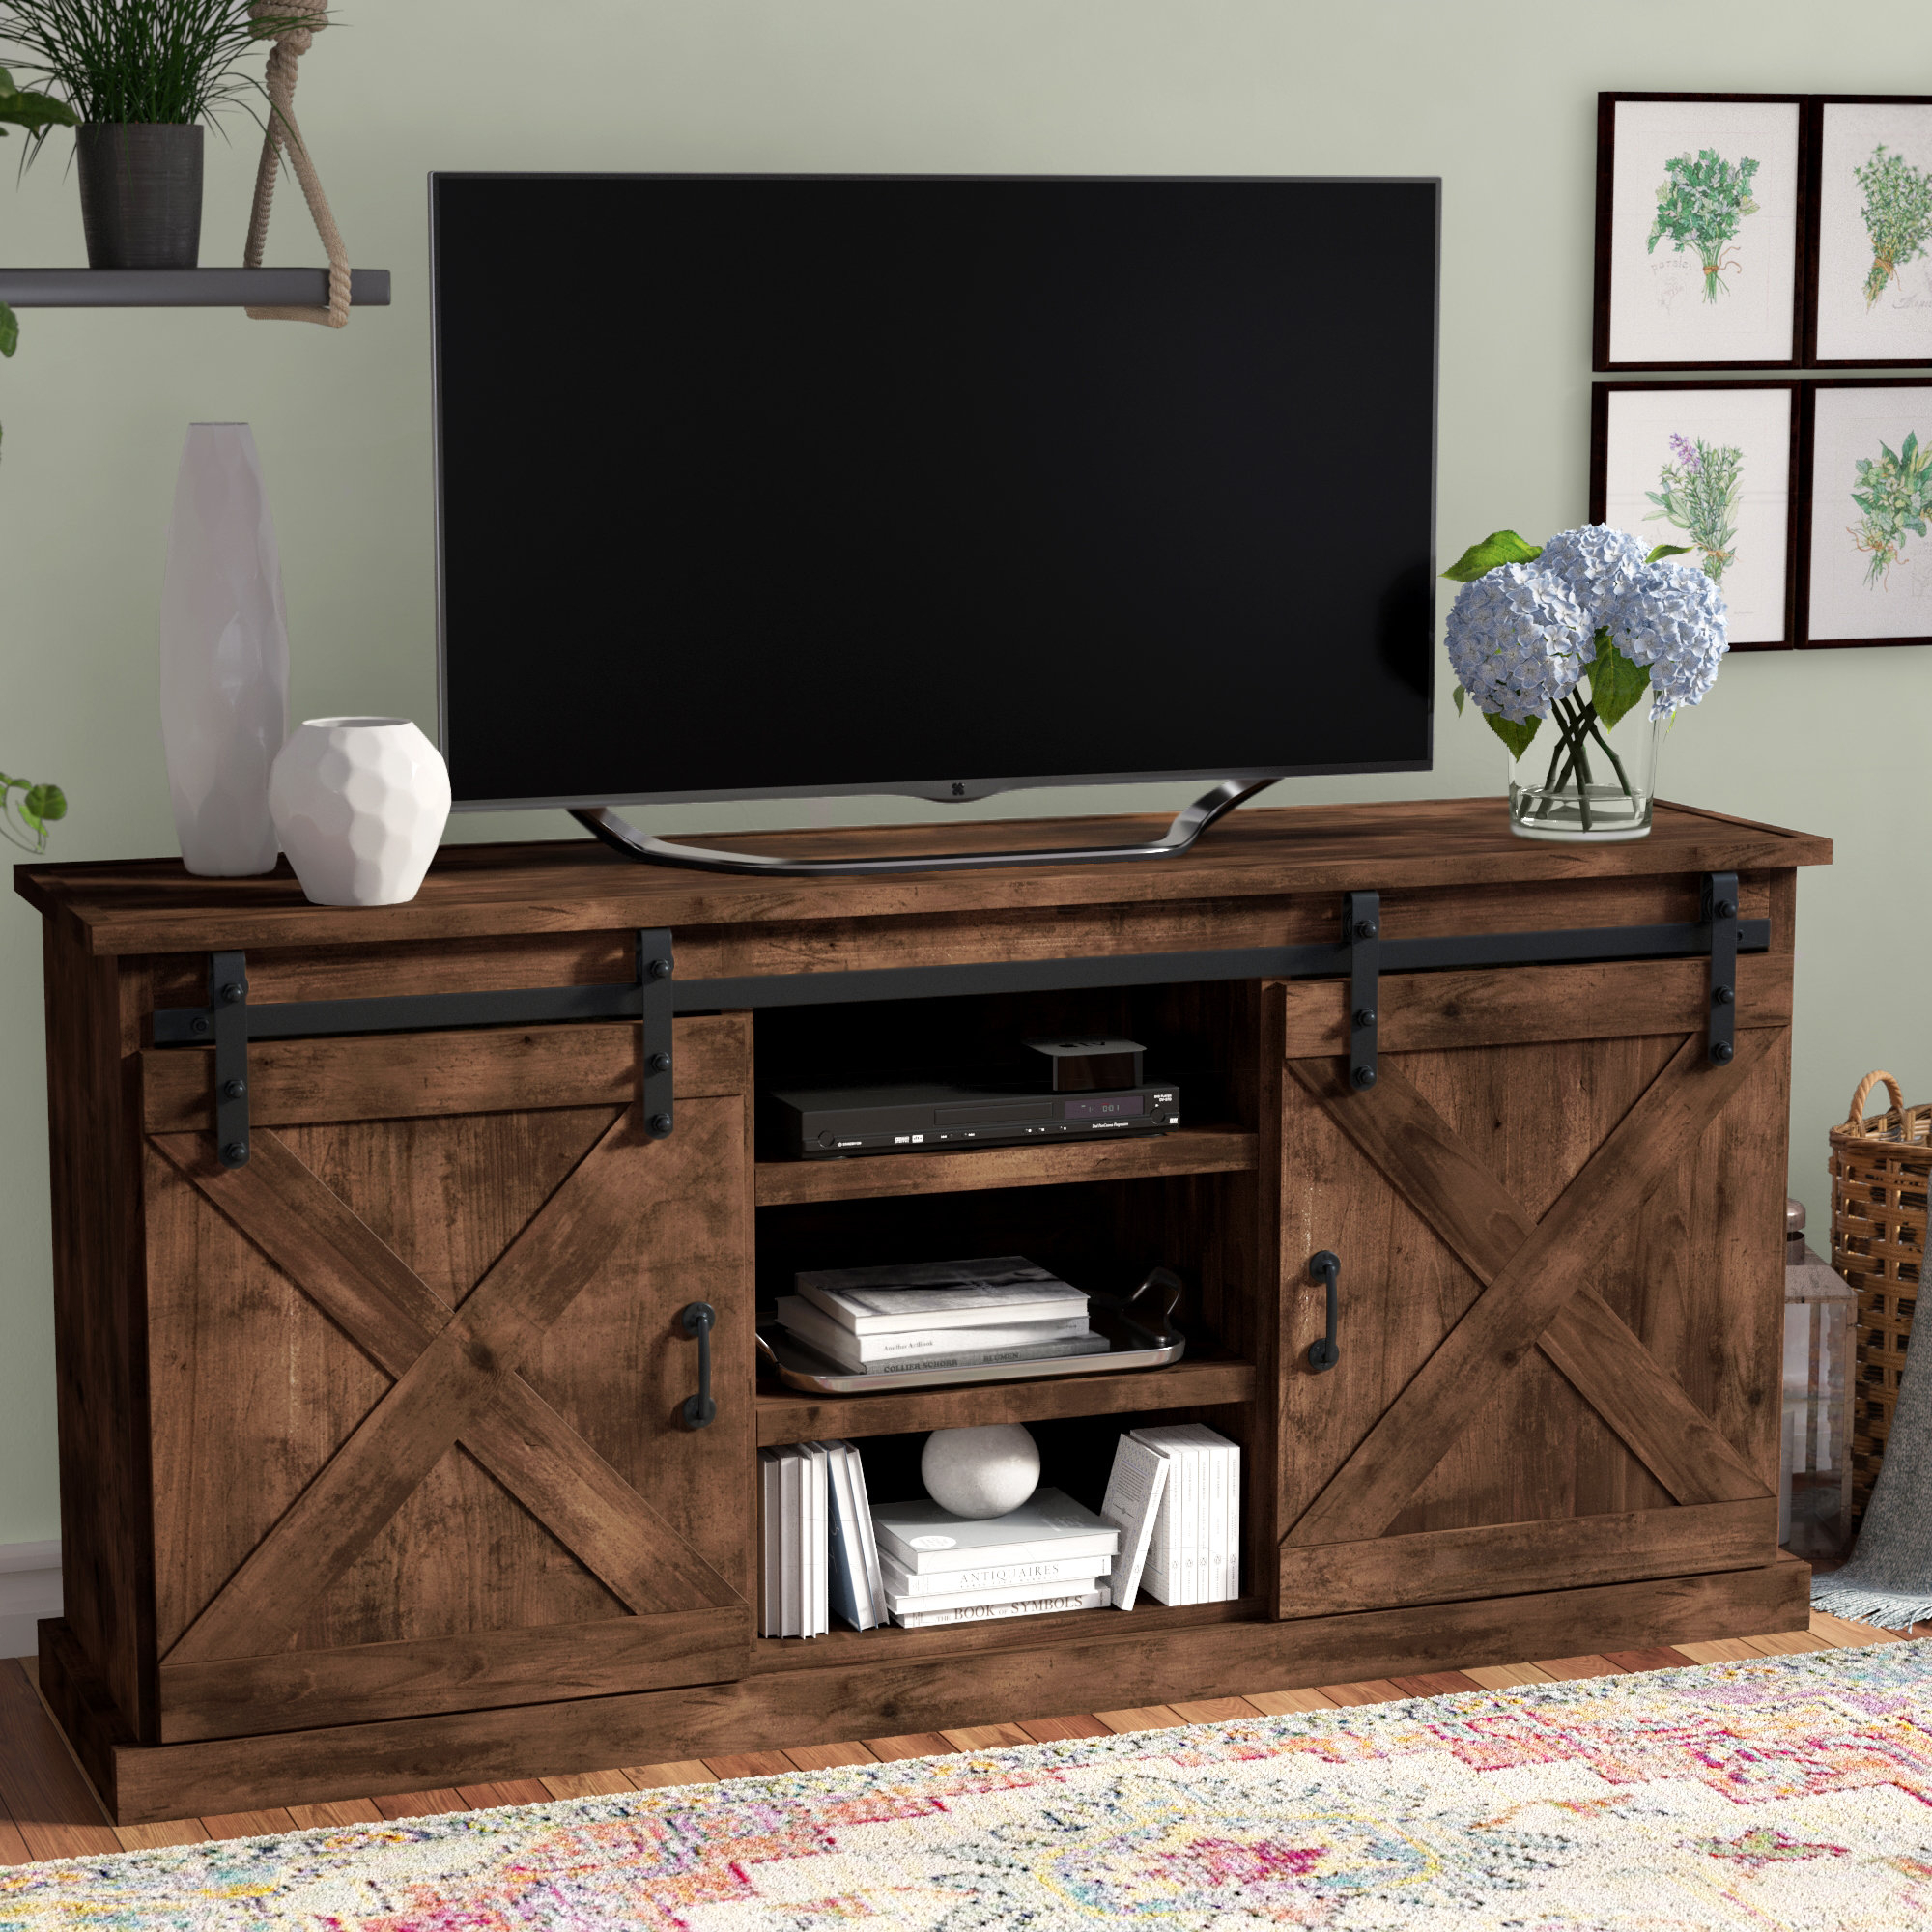 Laurel Foundry Modern Farmhouse Clair Tv Stand For Tvs Up To 66 inside Casey Grey 66 Inch Tv Stands (Image 12 of 30)